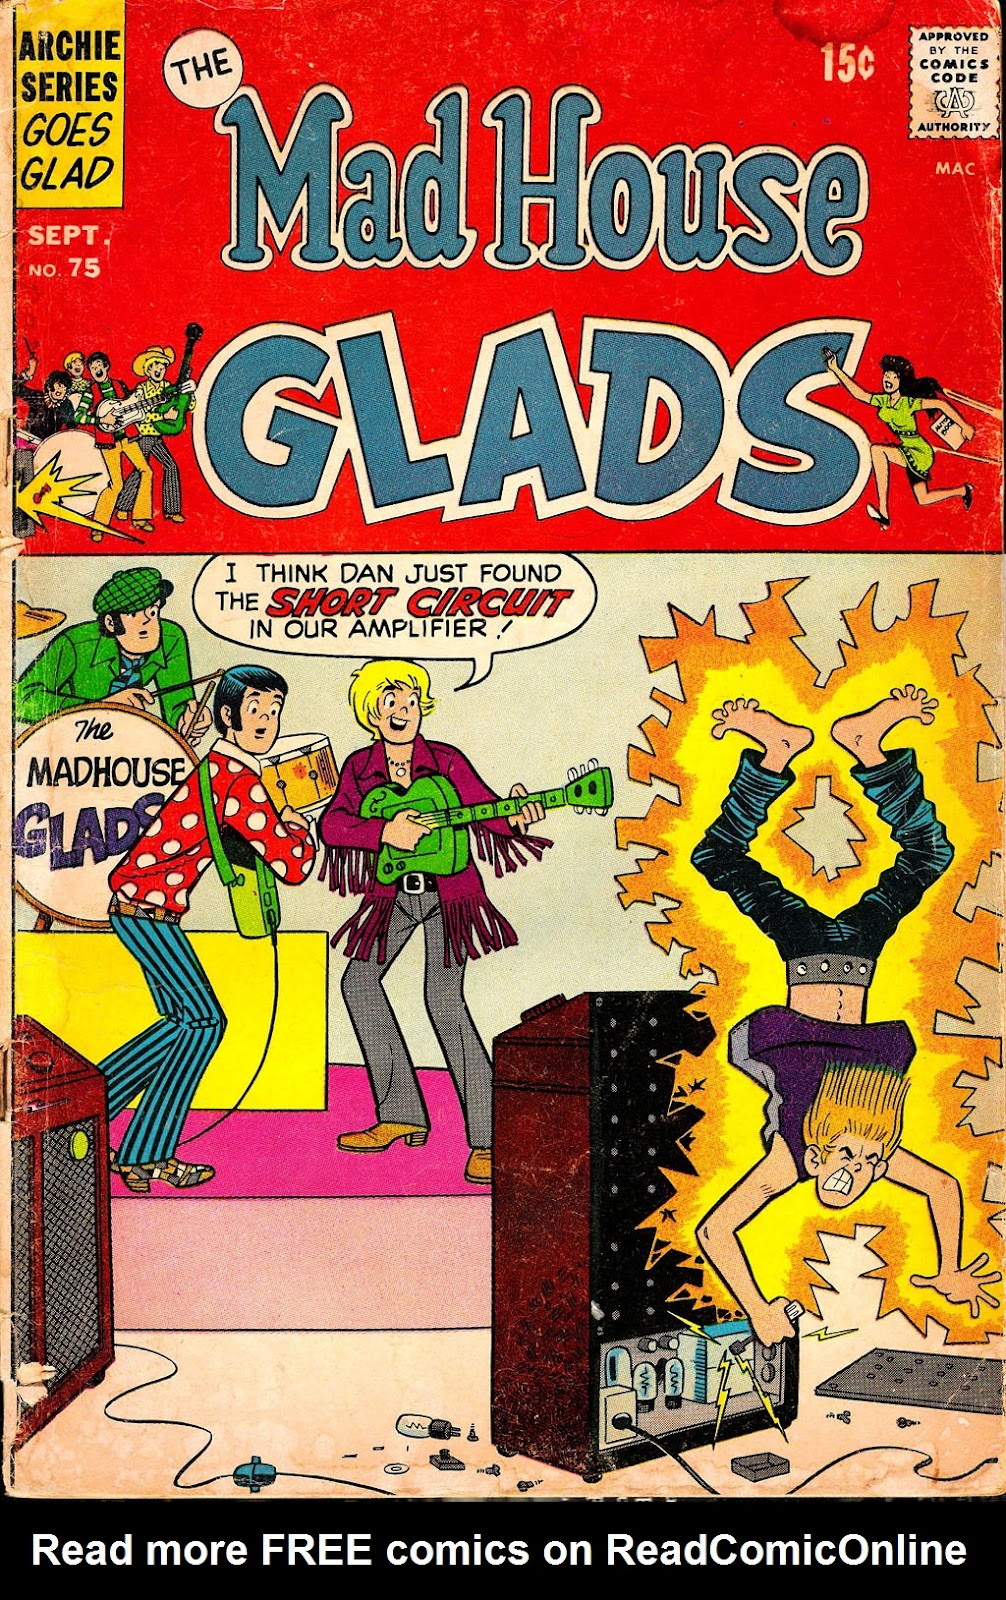 Read online The Mad House Glads comic -  Issue #75 - 1